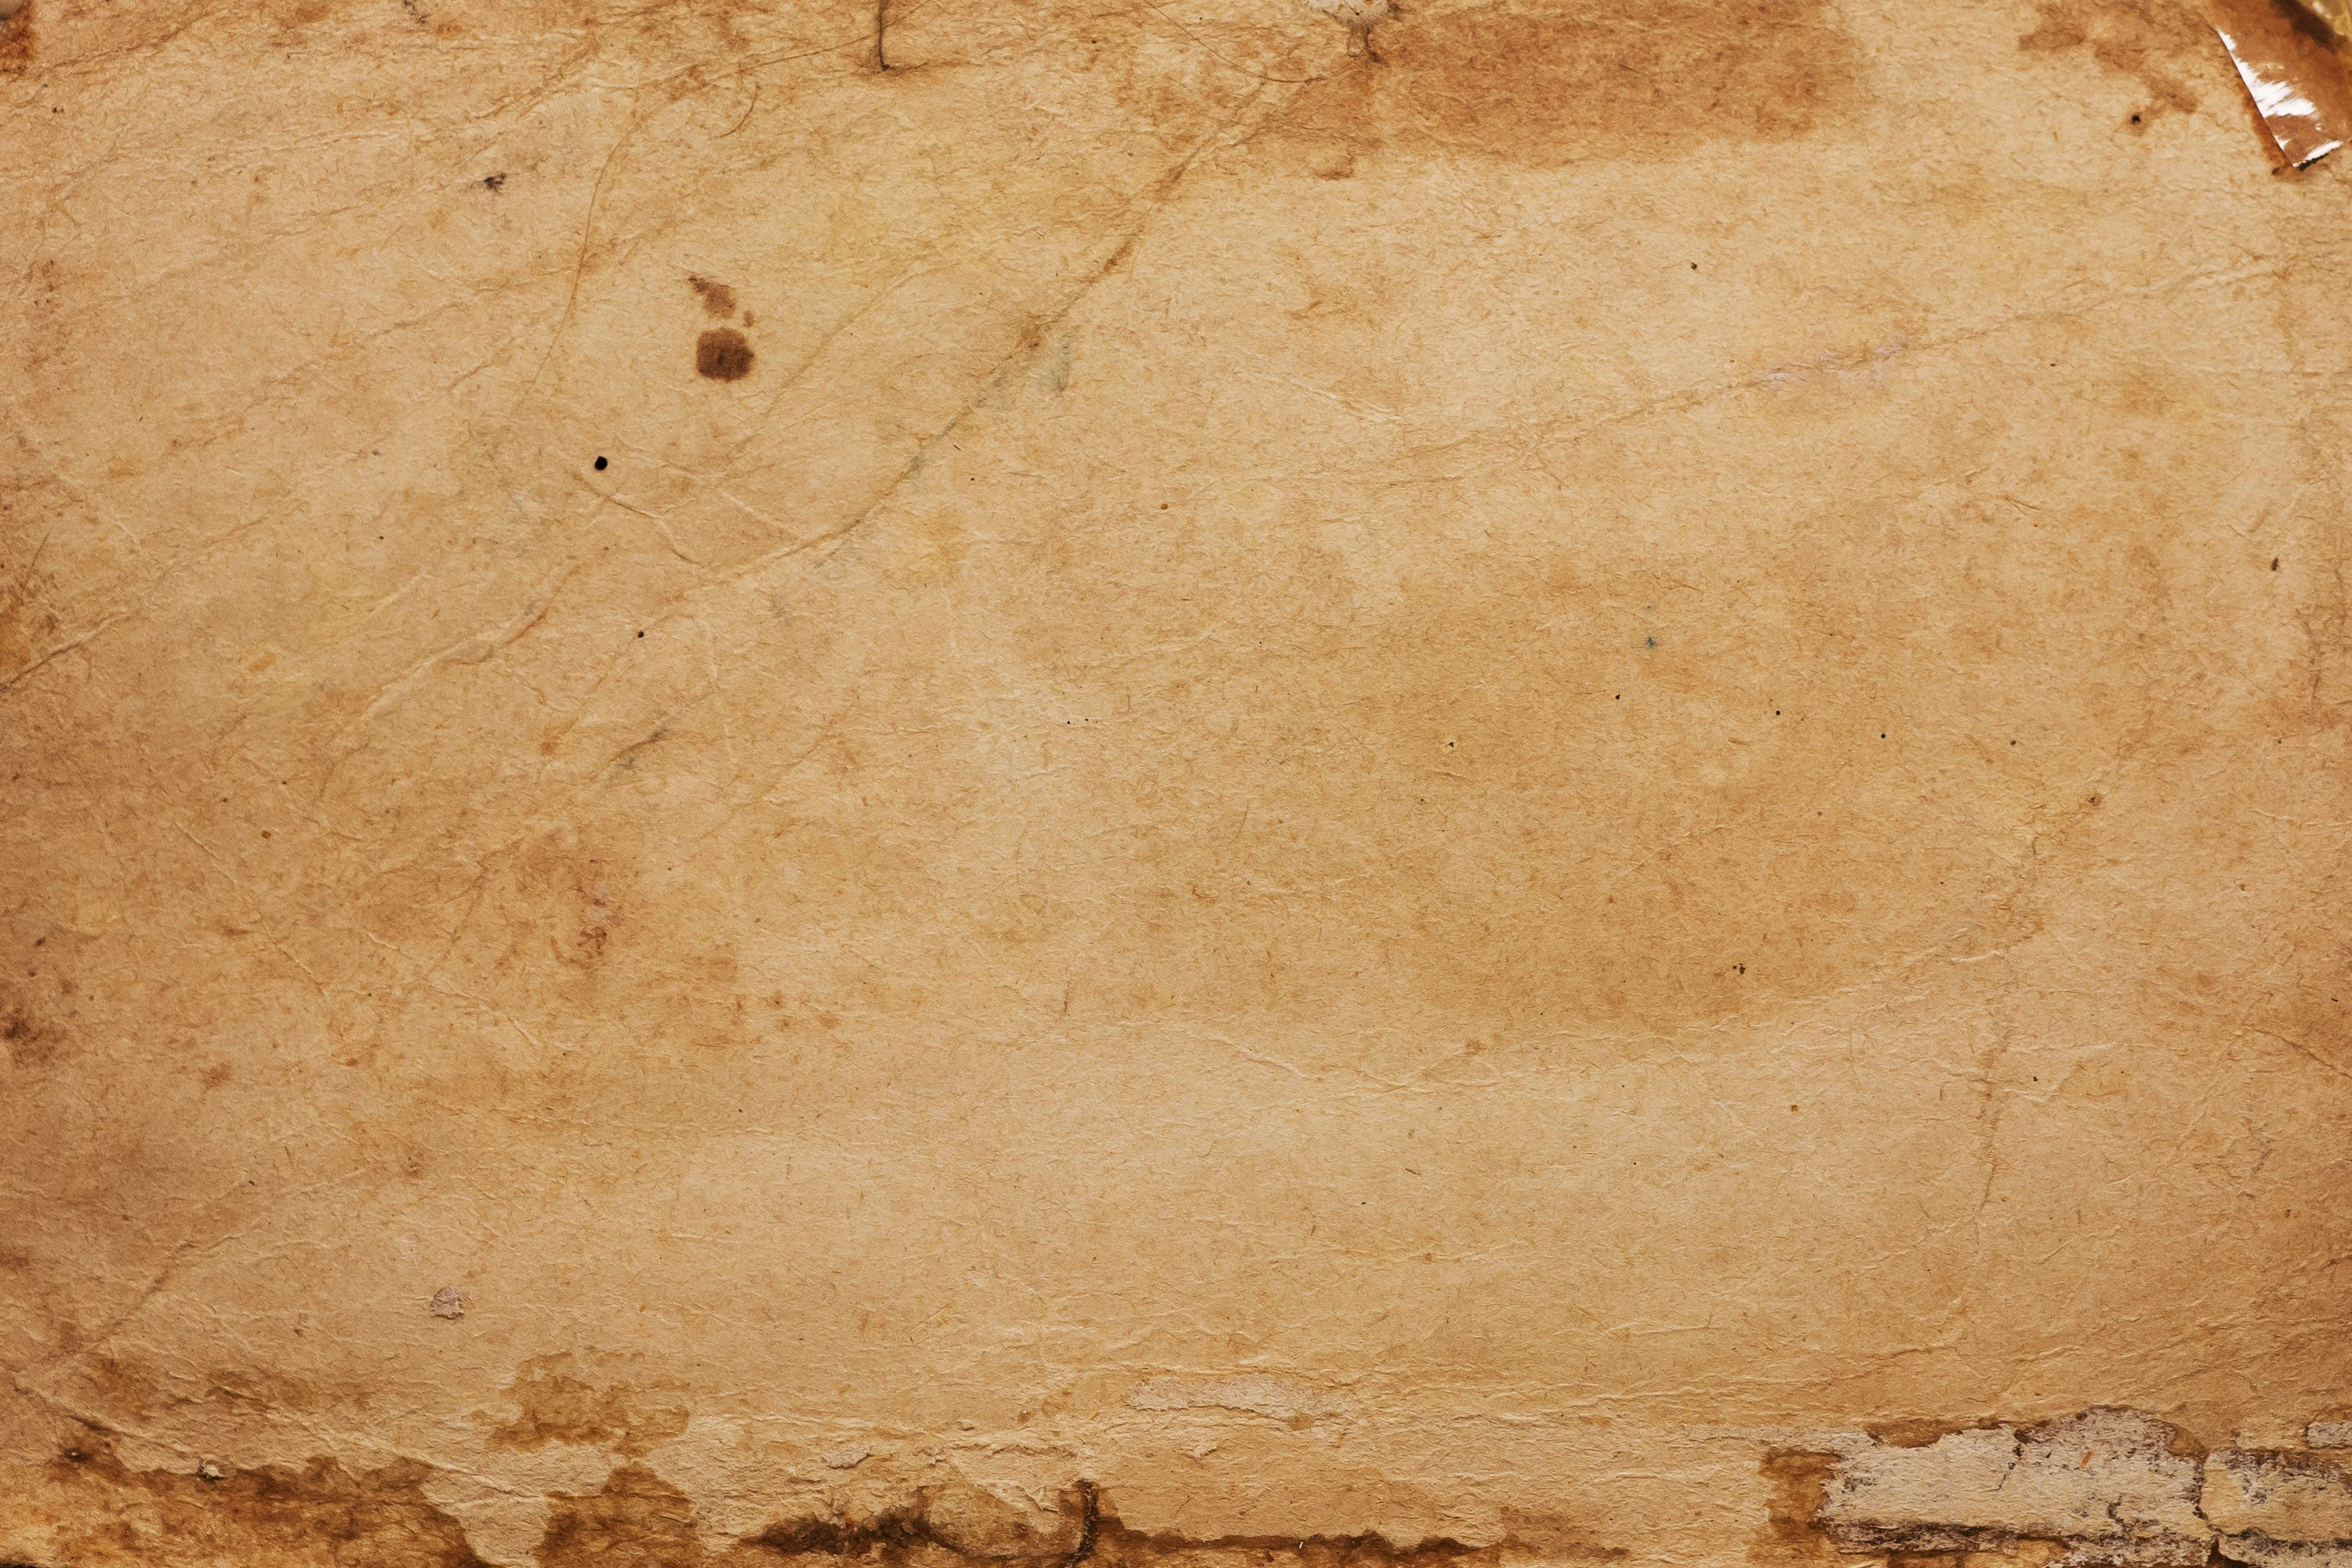 Old paper texture on Pinterest | Old Paper, Paper Texture and Texture | Old  paper background, Grunge paper textures, Paper texture